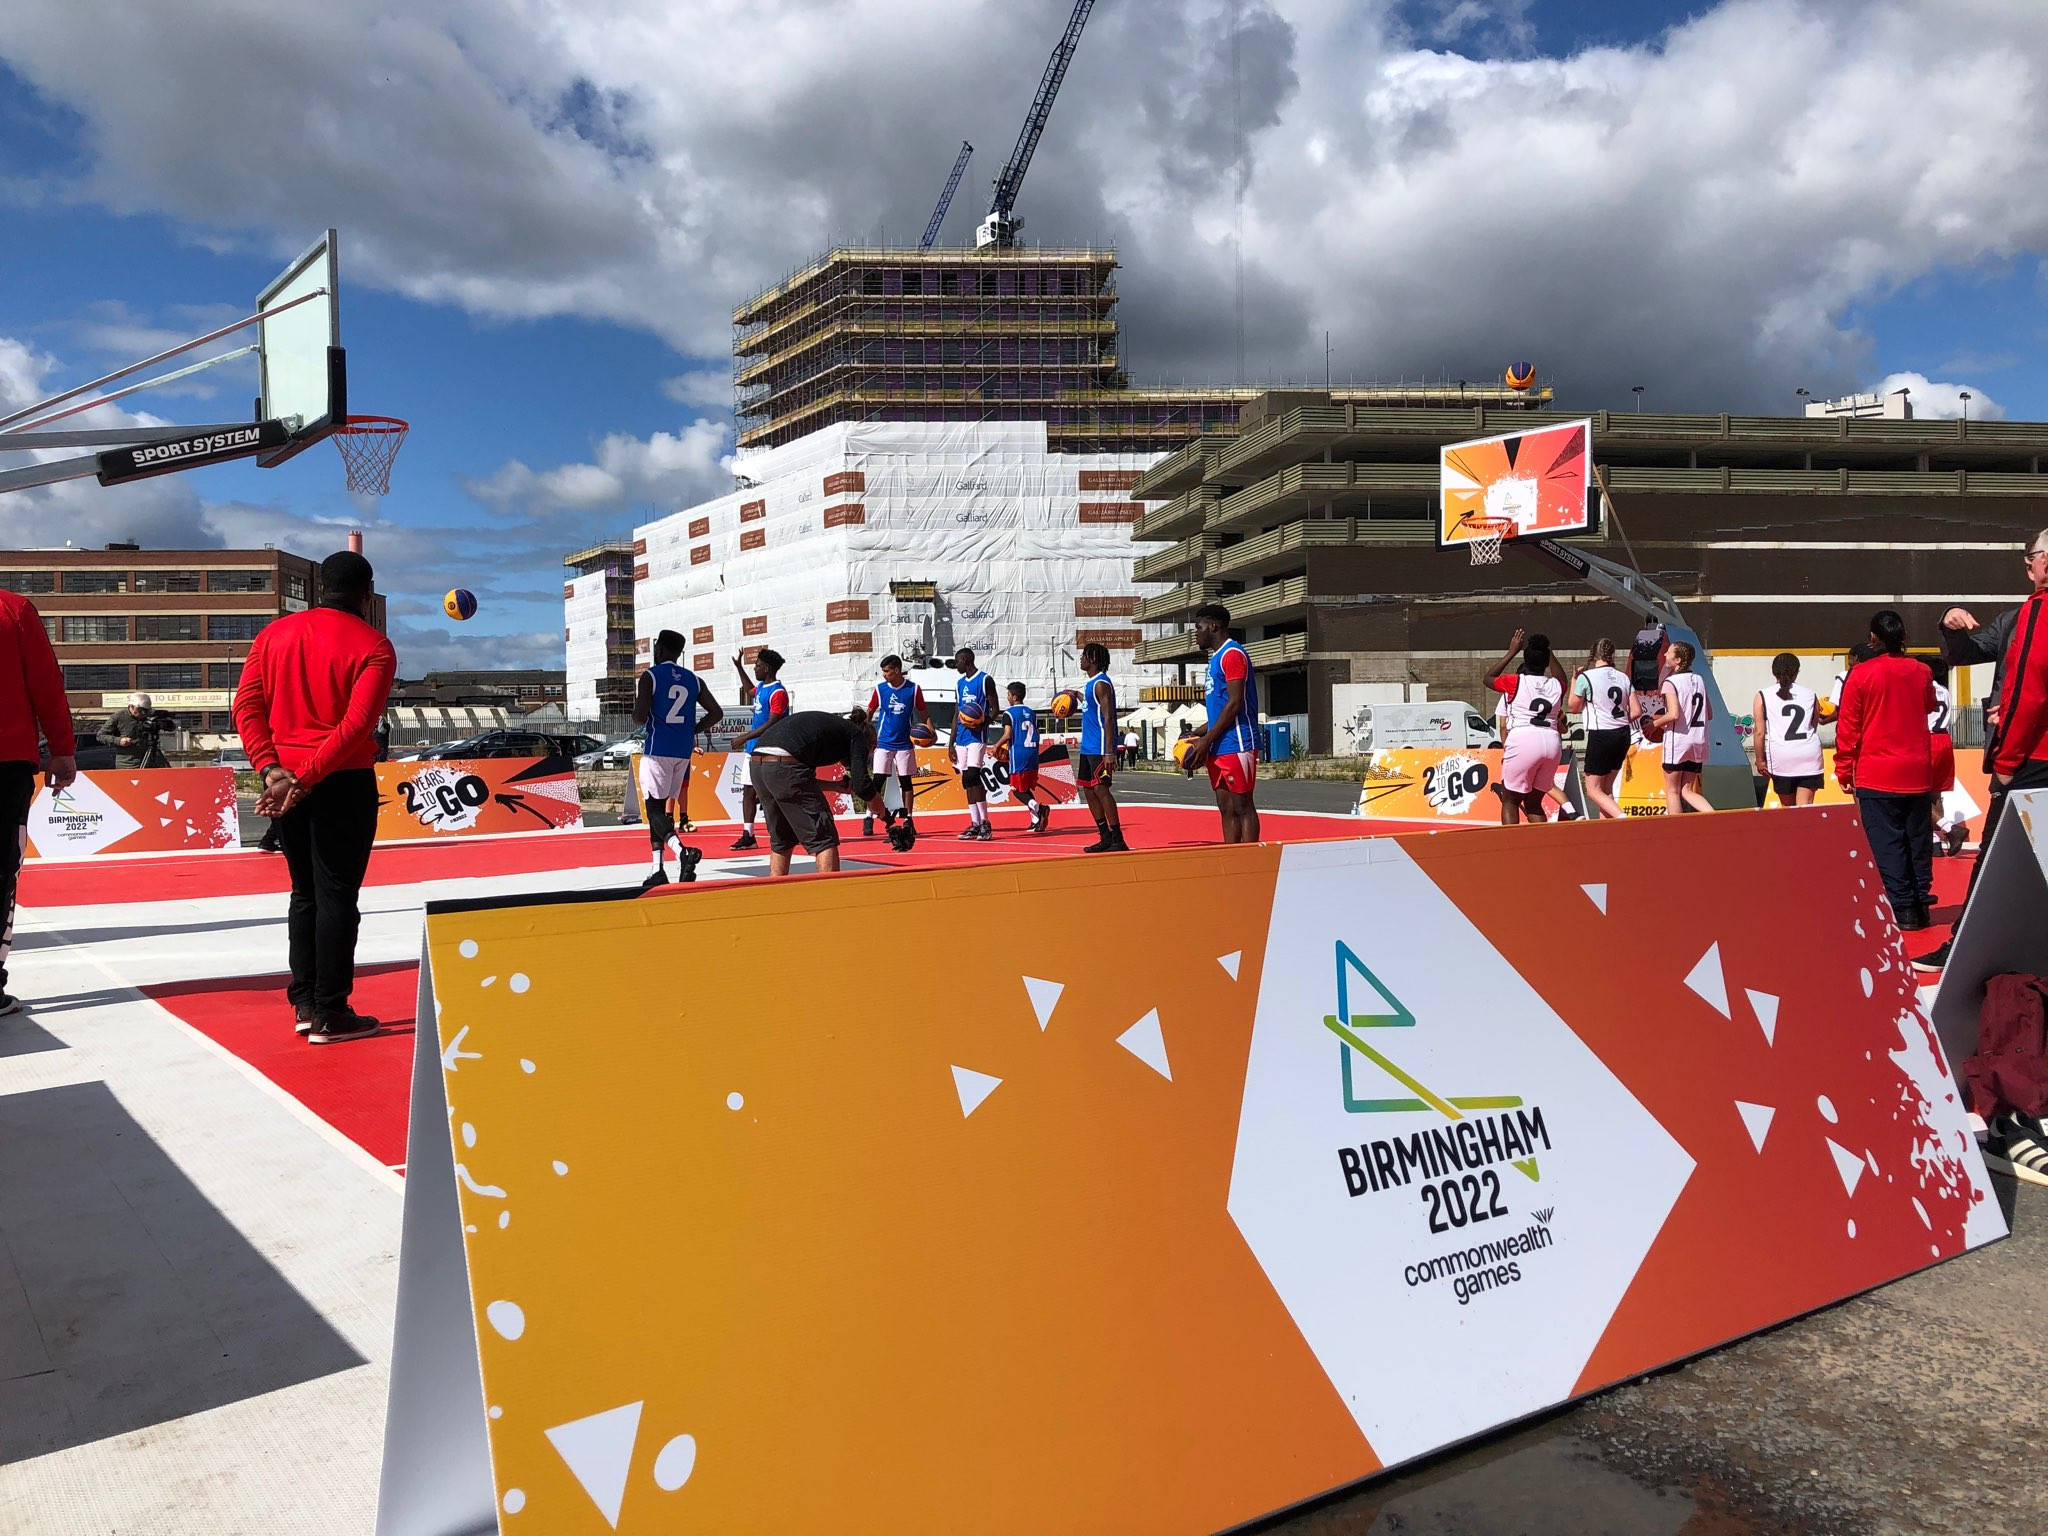 Ian Reid revealed he was confident about the successful delivery of Birmingham 2022 as the event marked two-years-to-go ©ITG